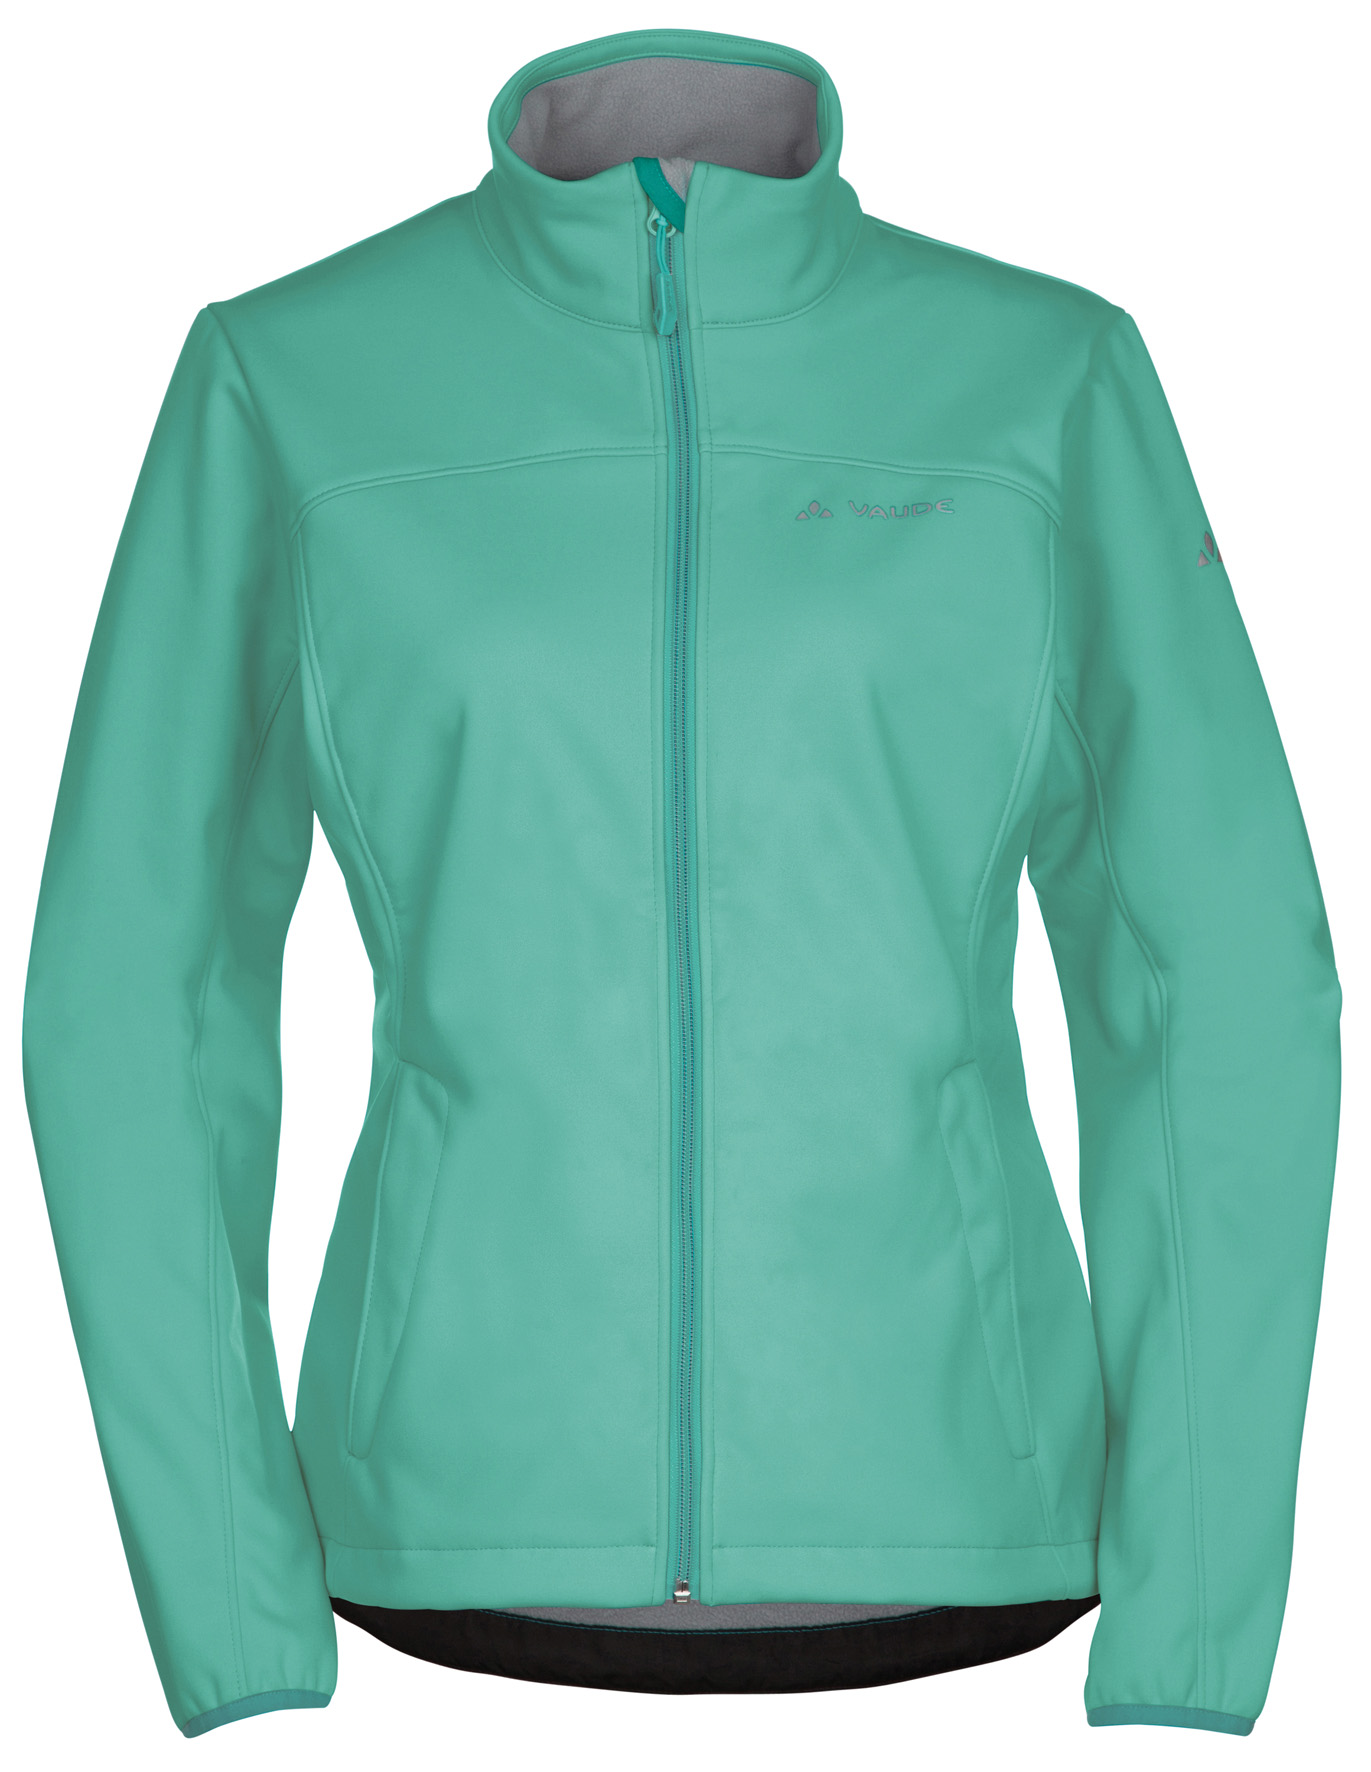 Women´s Wintry Jacket II atlantis Größe 36 - schneider-sports